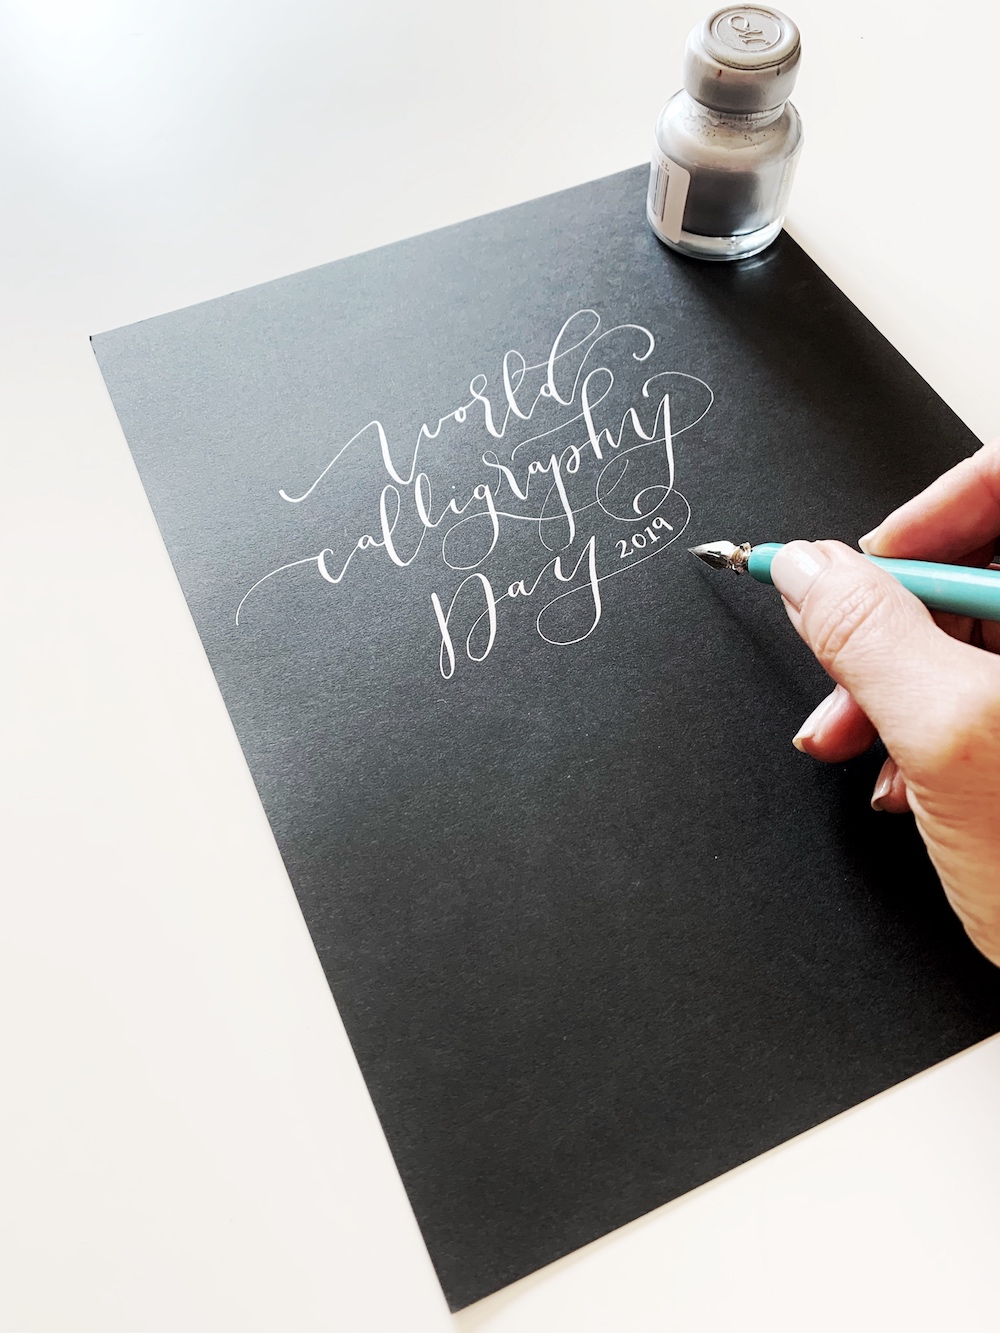 A fun and meaningful contest for World Calligraphy Day 2019! #saysomethingspecial #worldcalligraphyday2019 with @lifeidesign and @manuscriptpenco